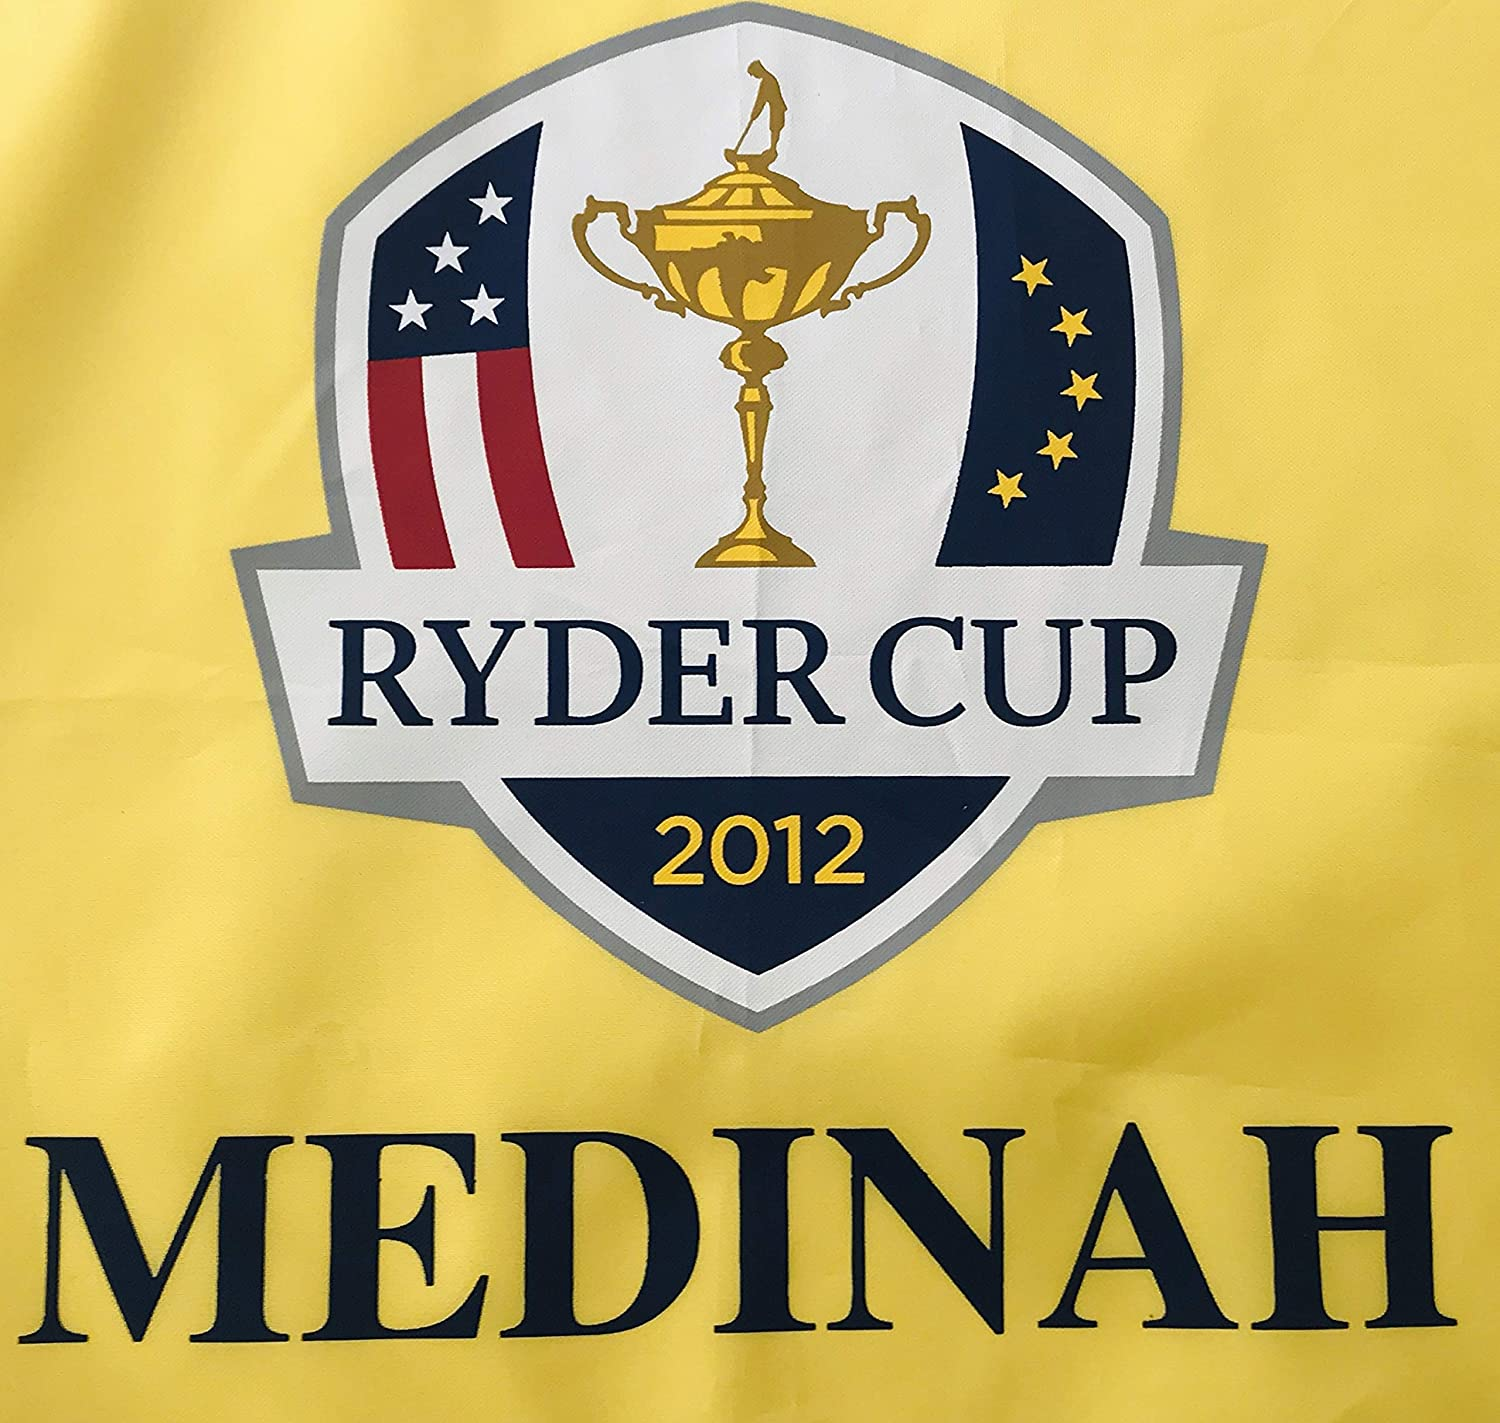 a10a7c4a274 Rory Mcilroy signed Ryder cup golf flag medinah 2012 team europe pga at  Amazon s Sports Collectibles Store